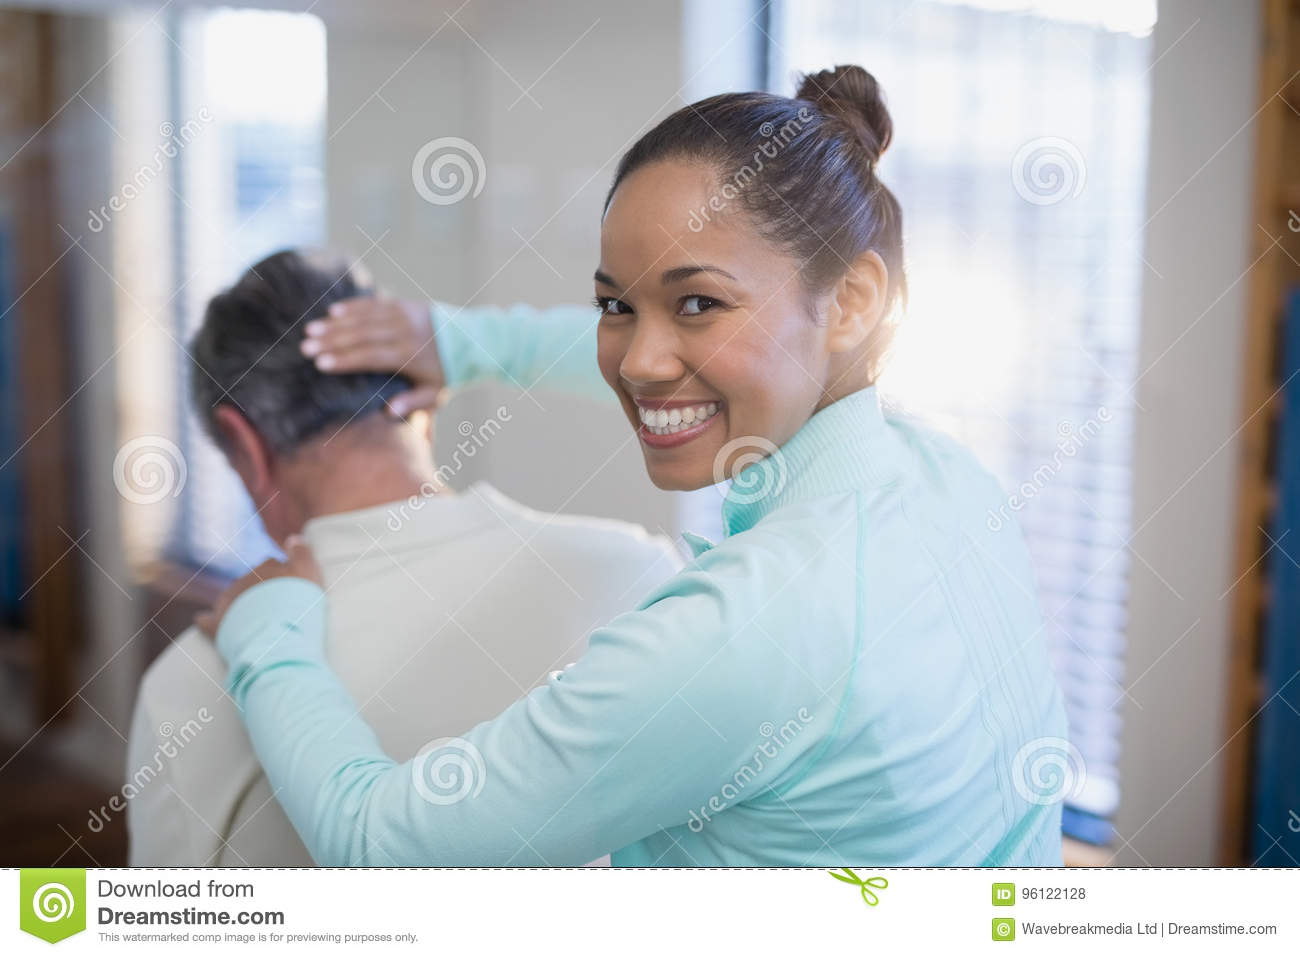 Rear view of portrait of smiling female therapist giving neck massaging to senior male patient